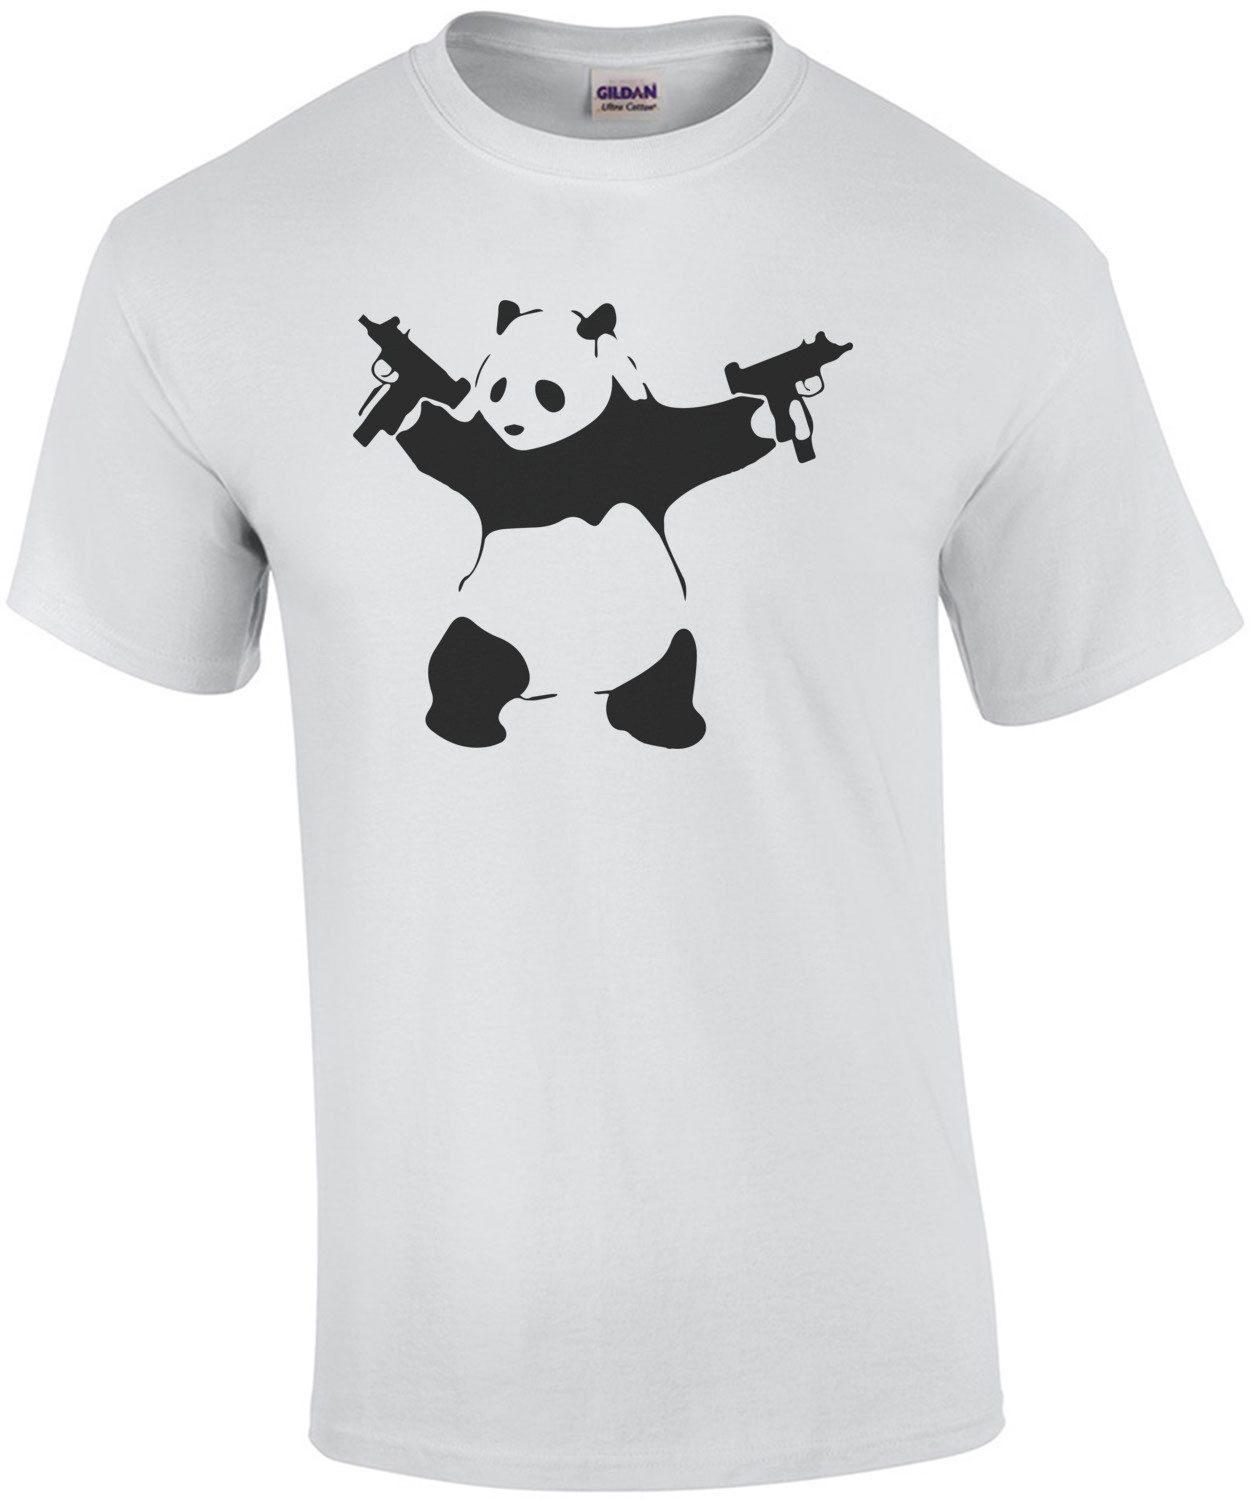 Panda Holding Machine Guns T-Shirt